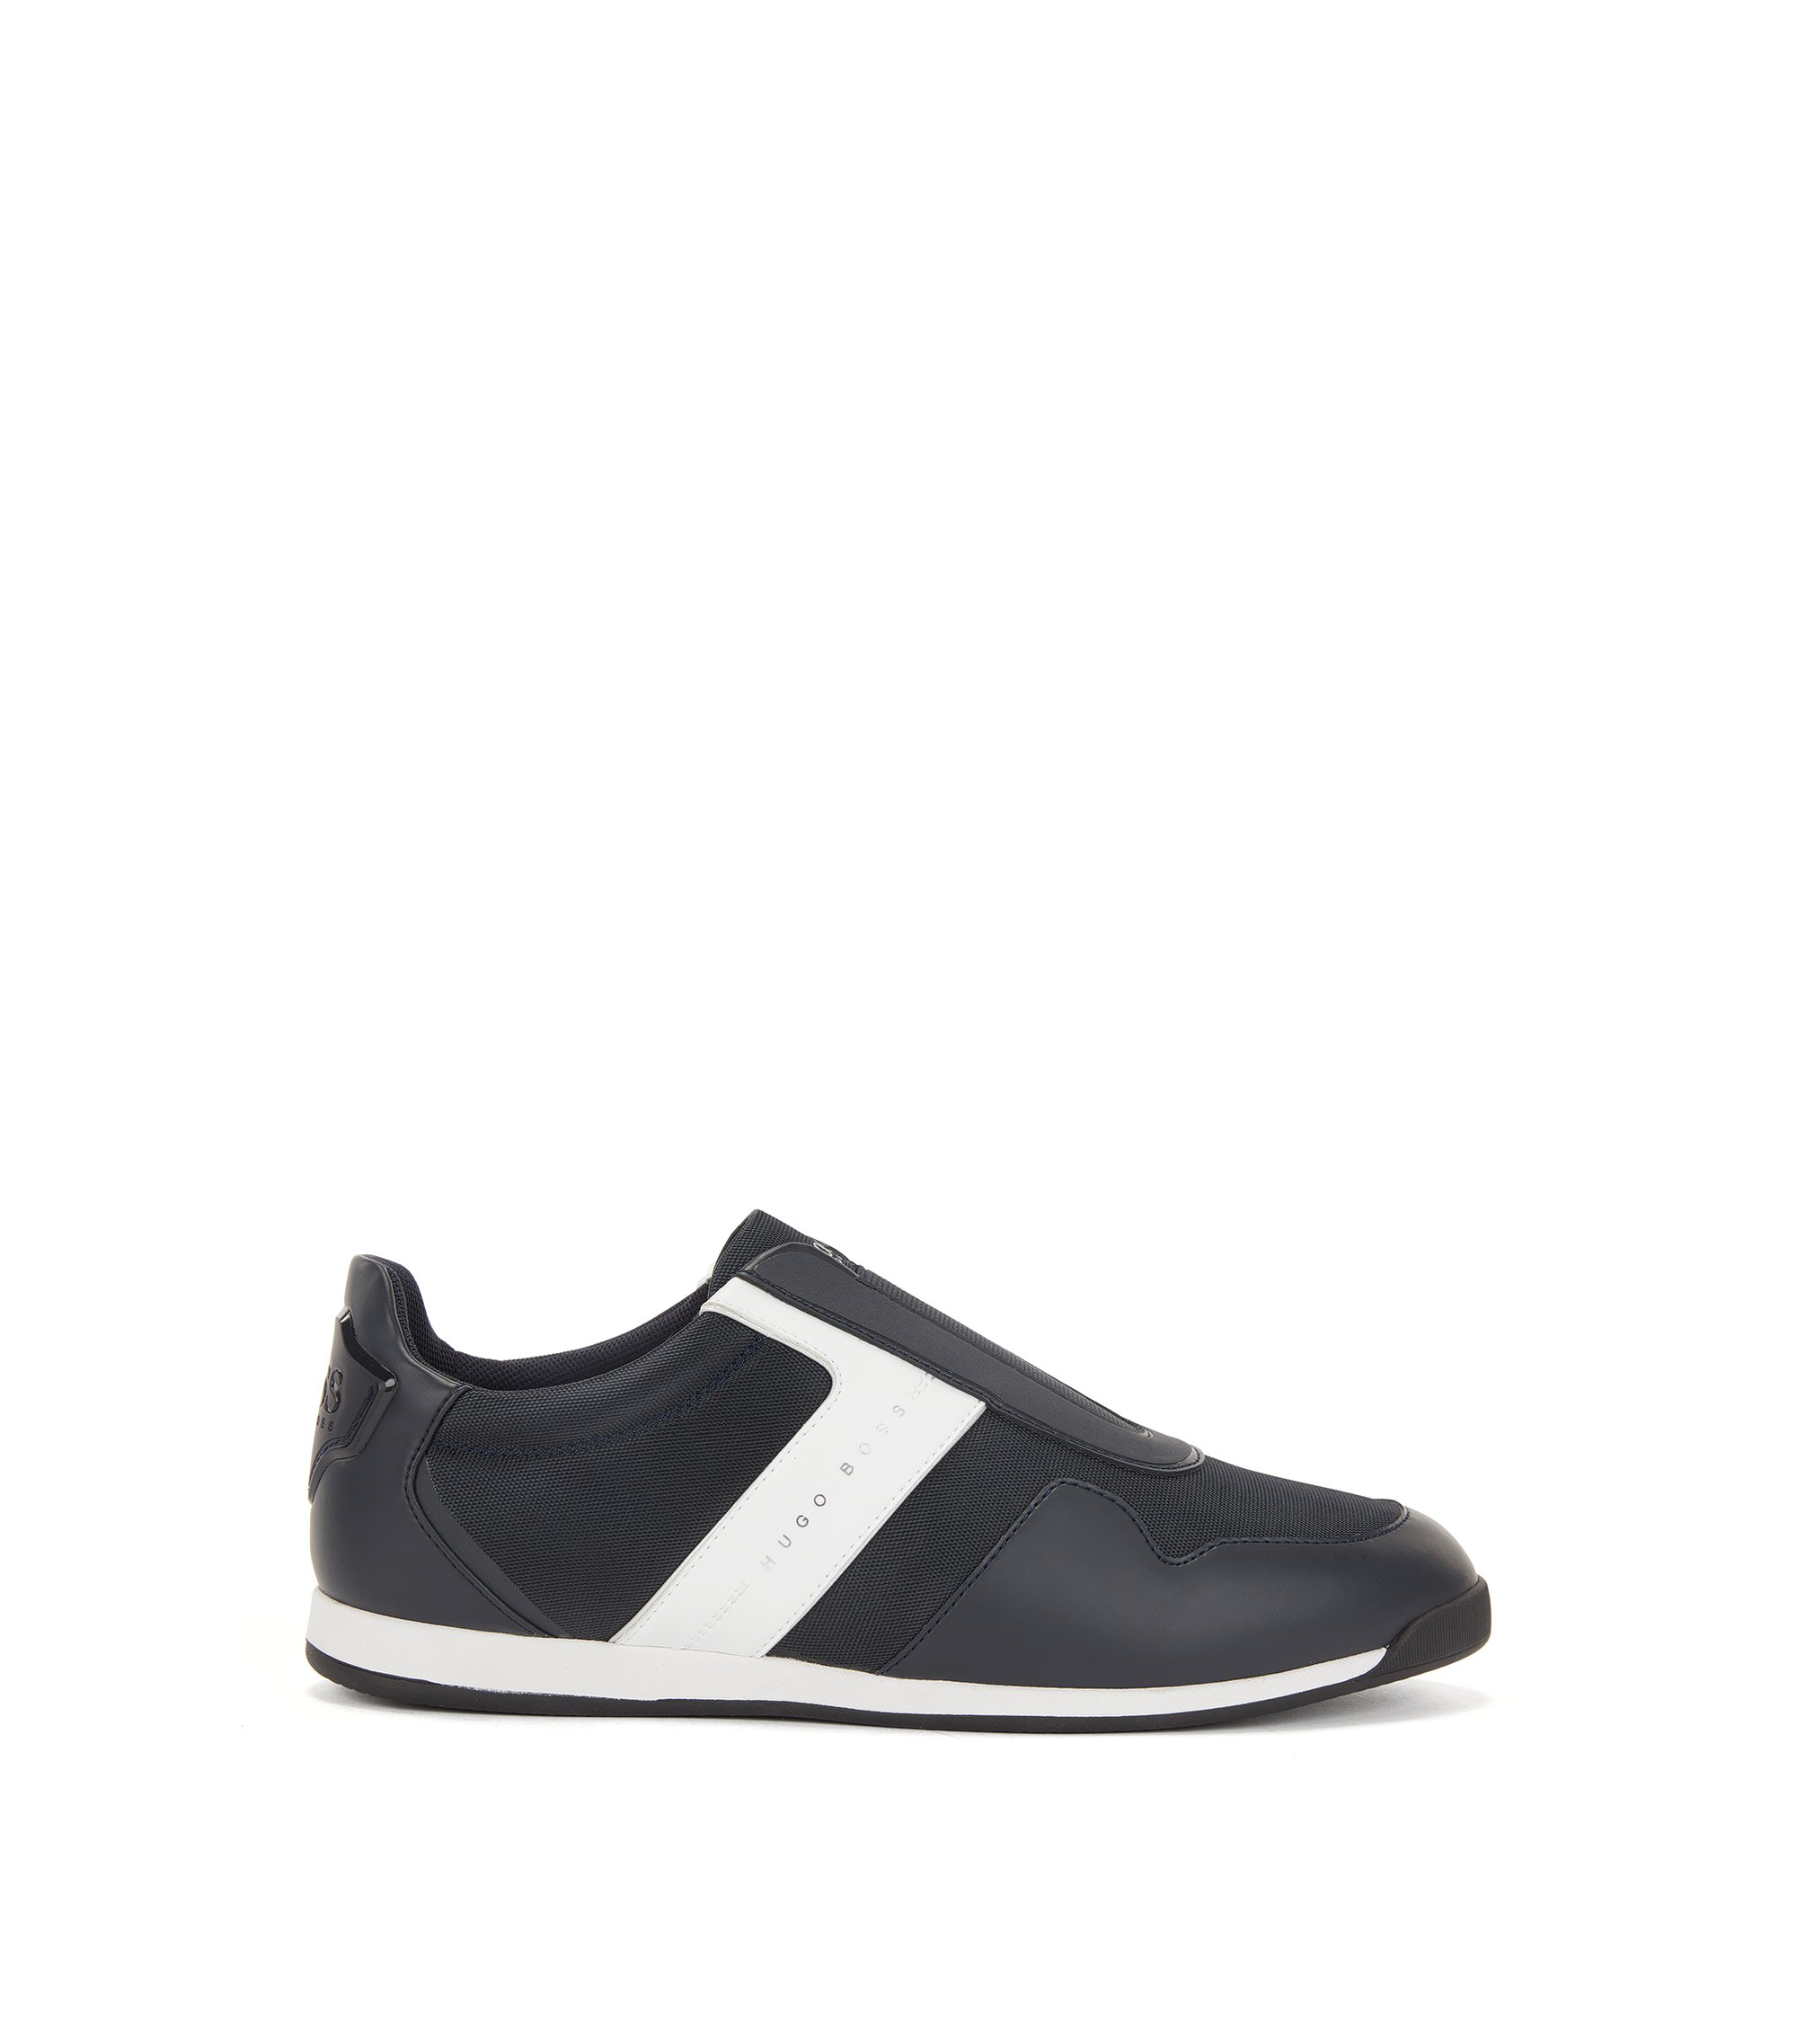 Sneakers slip-on con dettagli in rete, Blu scuro